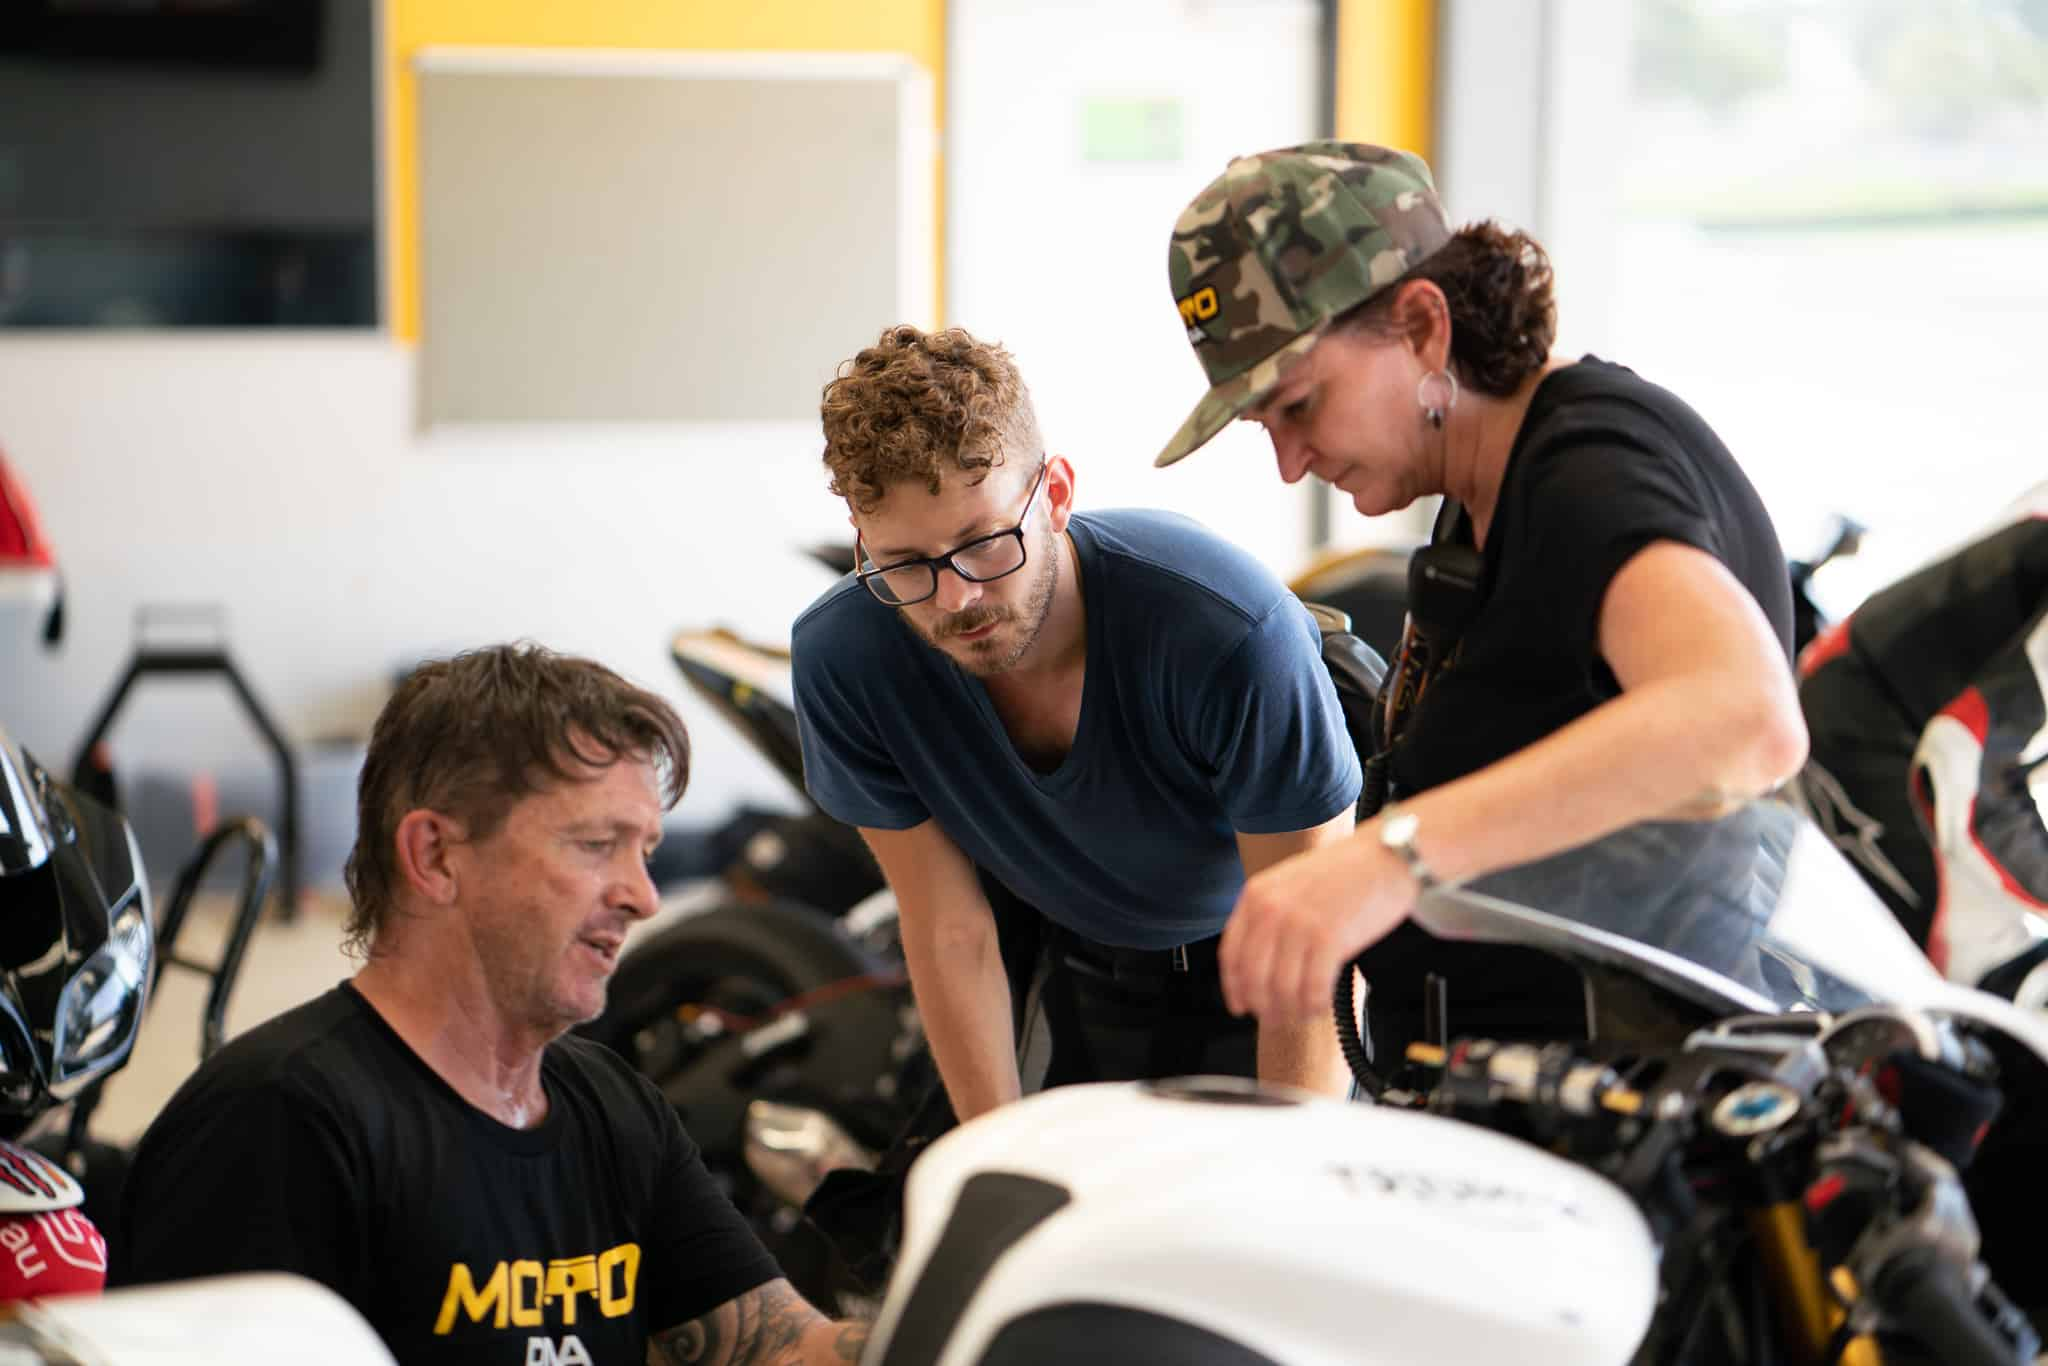 TROY BAYLISS SIGNS WITH motoDNA FOUNDATION